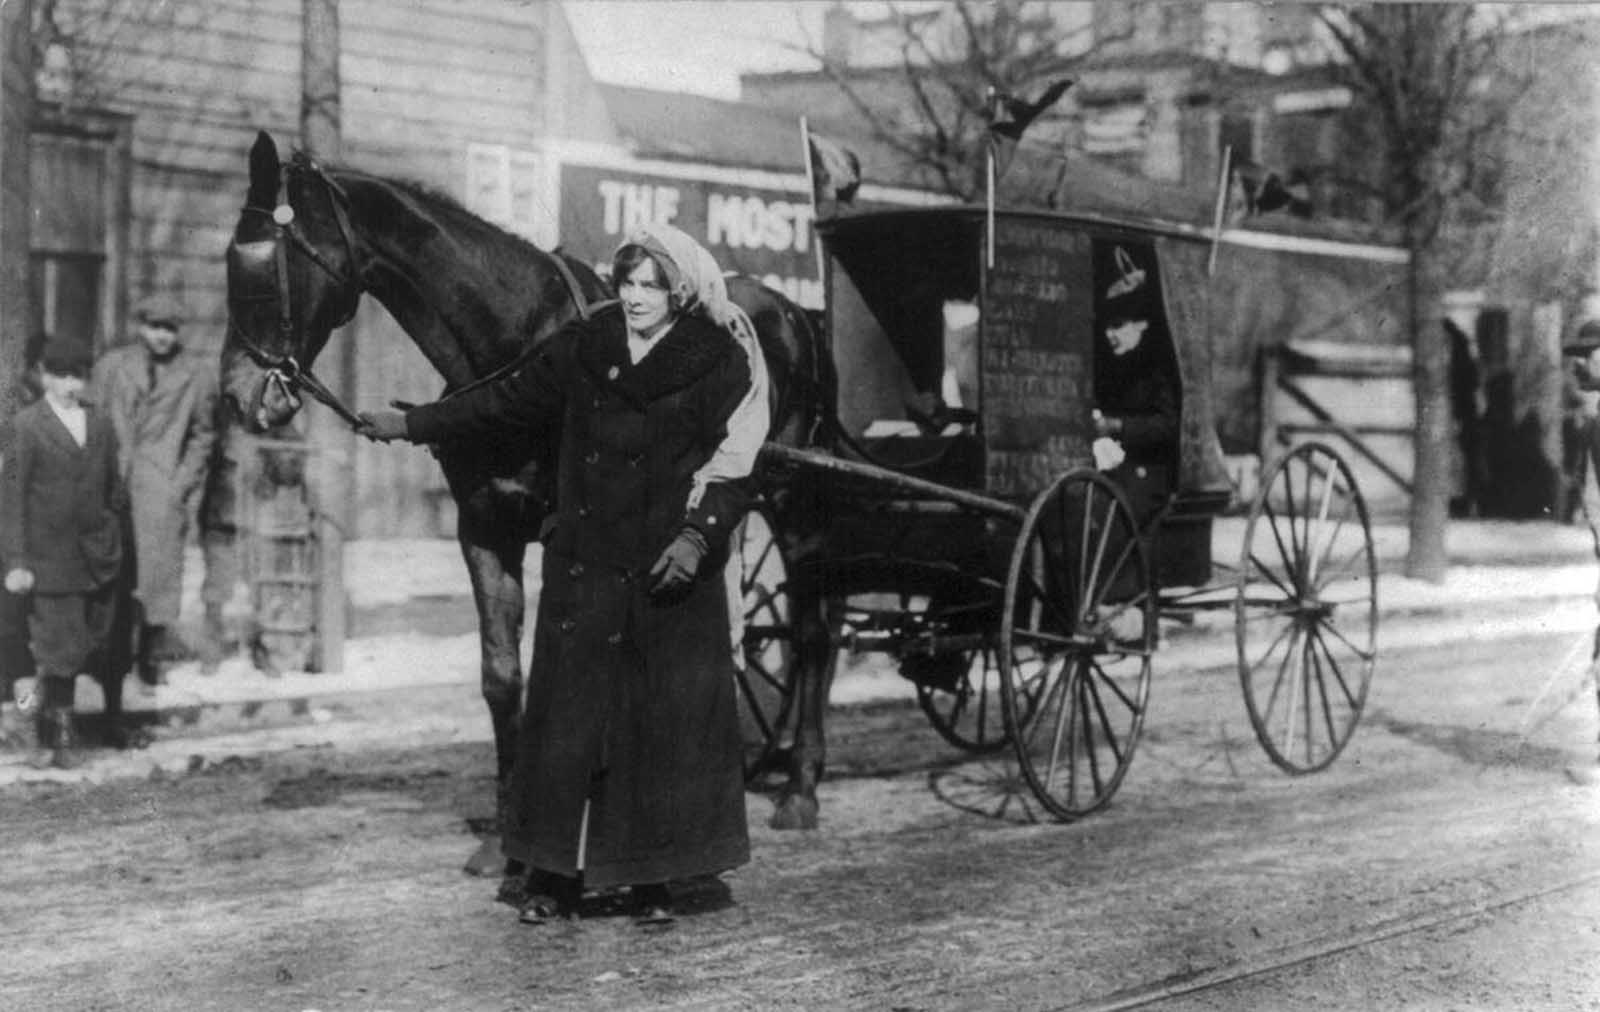 Elizabeth Freeman of the New York State Suffrage Association, with horse and carriage, on her way to join the March 3, 1913 suffrage march in Washington, District of Columbia.